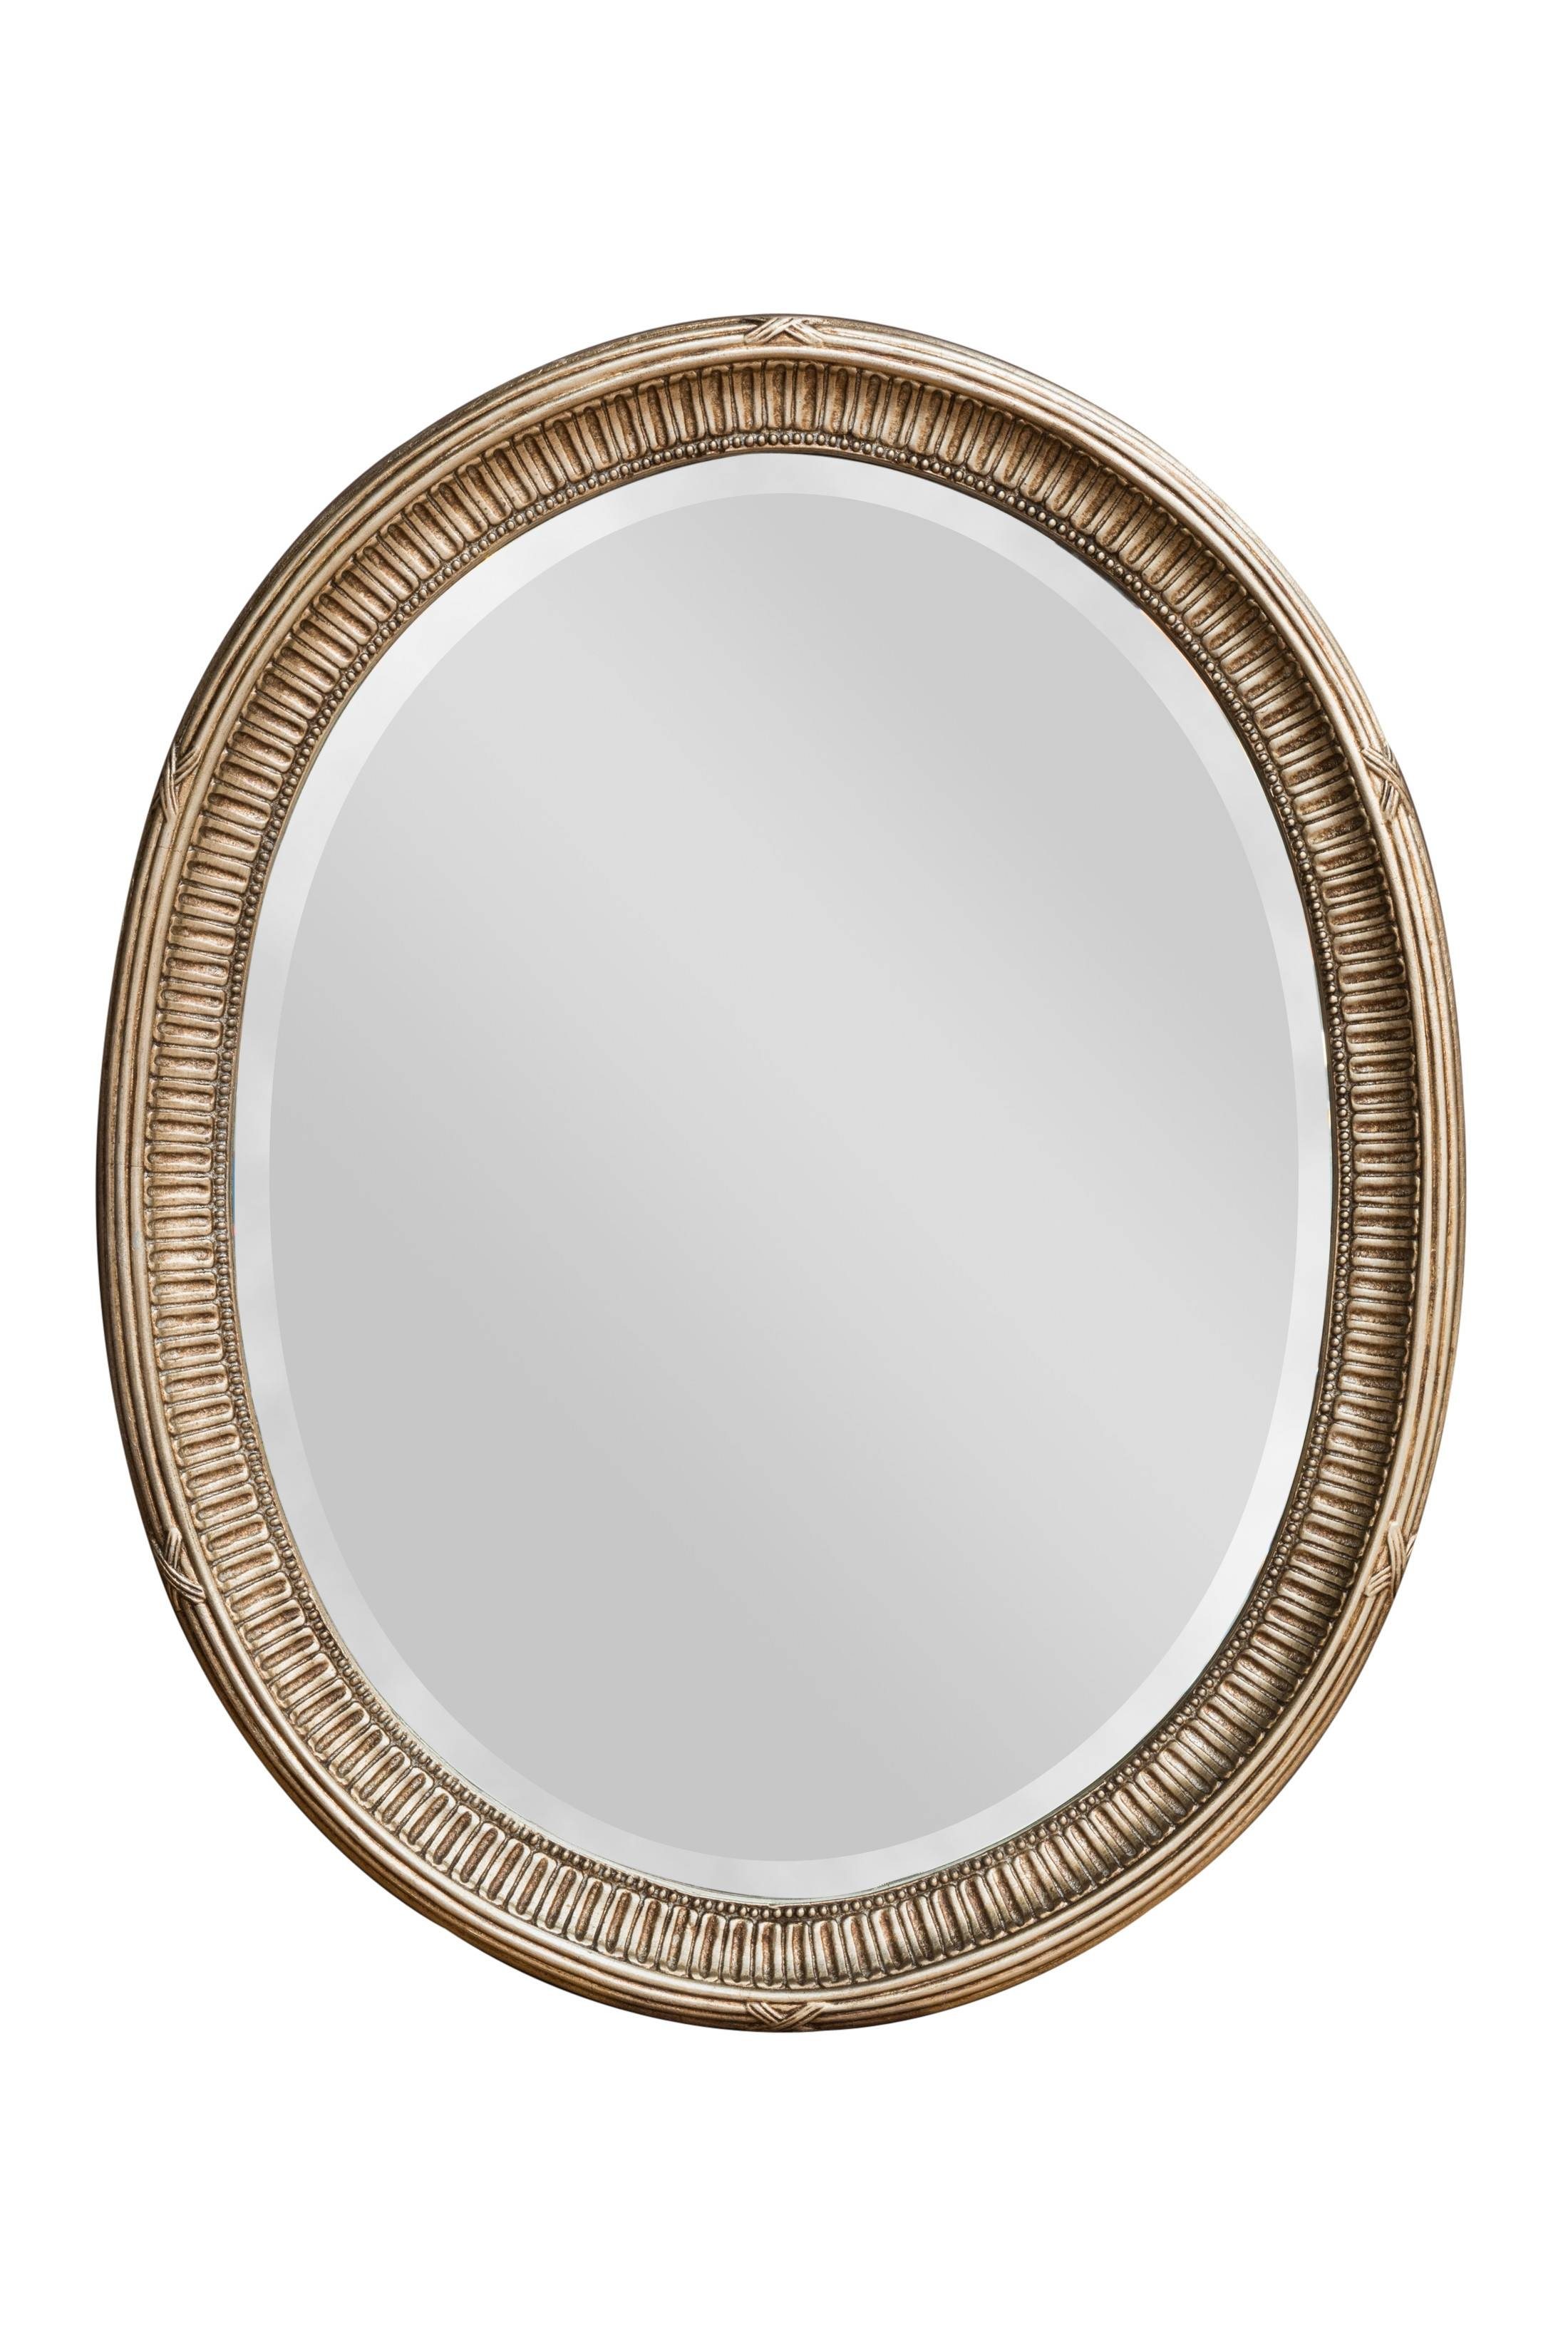 Adam Silver Oval Mirror | Bedroom Mirrors For Sale - Panfili in Silver Oval Mirrors (Image 2 of 25)